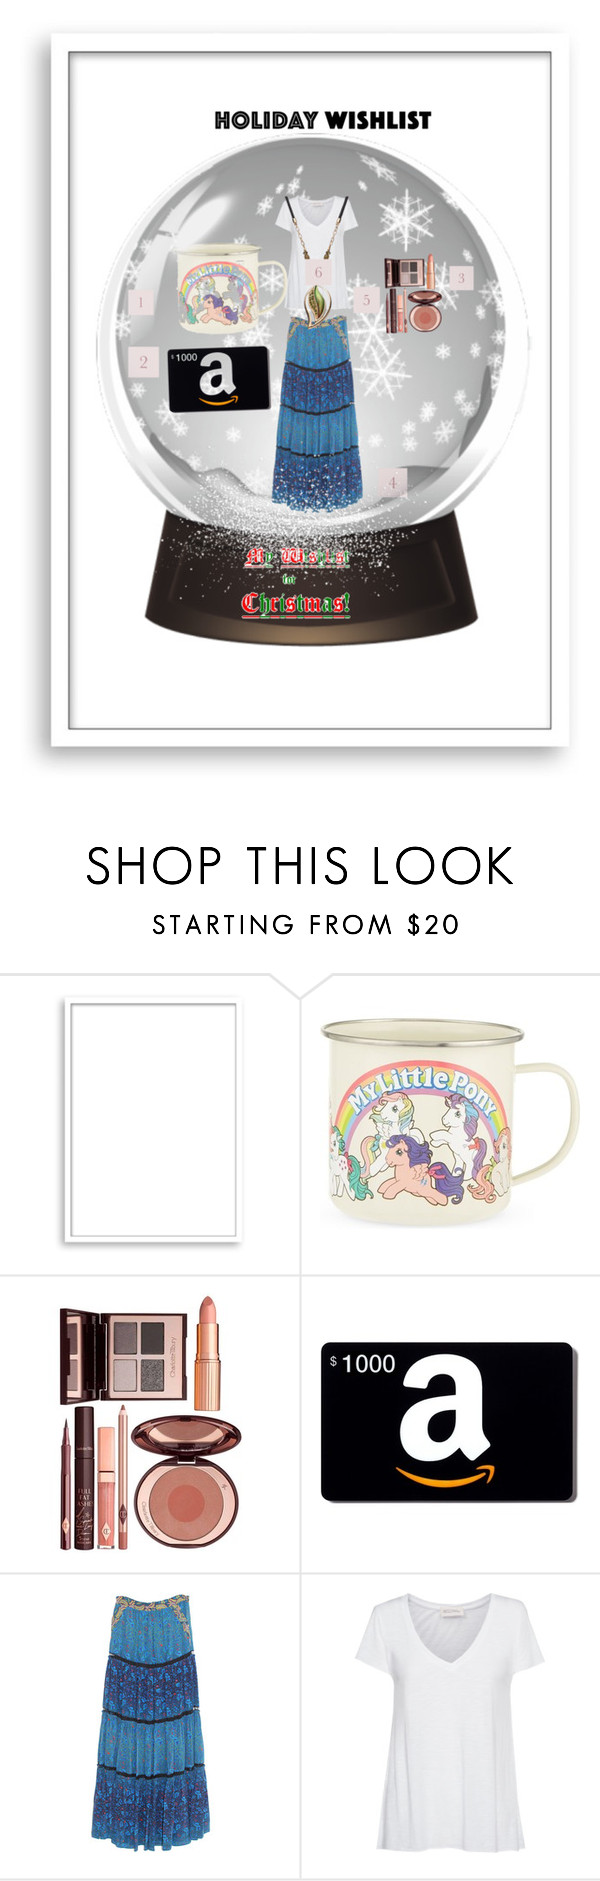 """What's on Your Wish List?"" by xdarkgothamx ❤ liked on Polyvore featuring Bomedo, Gift Republic, Charlotte Tilbury, Marchesa Voyage, American Vintage and Croft & Barrow"